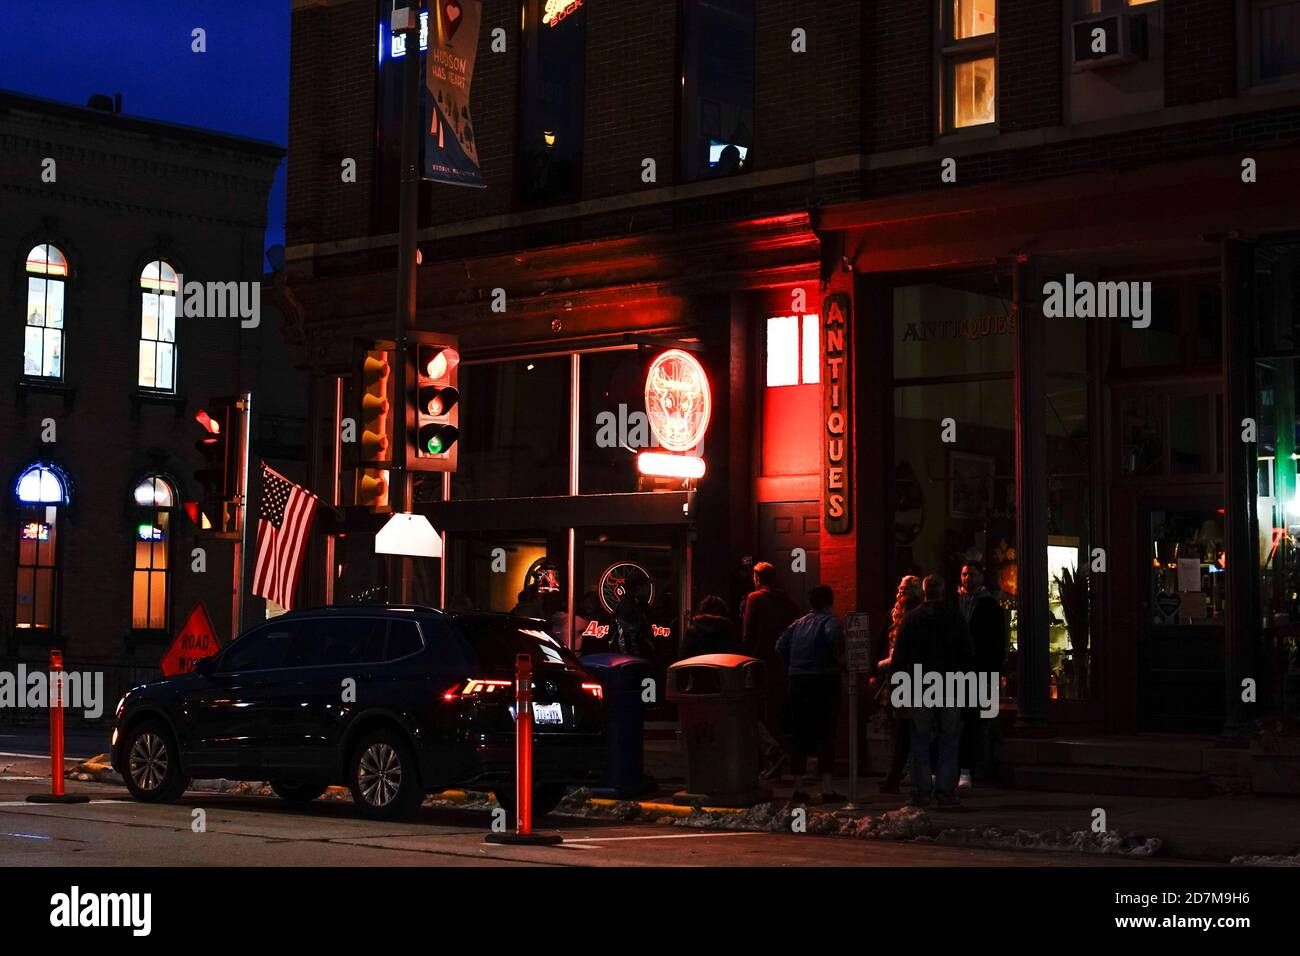 People Are Seen Socializing Outside Agave Kitchen As The Coronavirus Disease Covid 19 Outbreak Continues In Hudson Wisconsin U S October 23 2020 Reuters Bing Guan Stock Photo Alamy